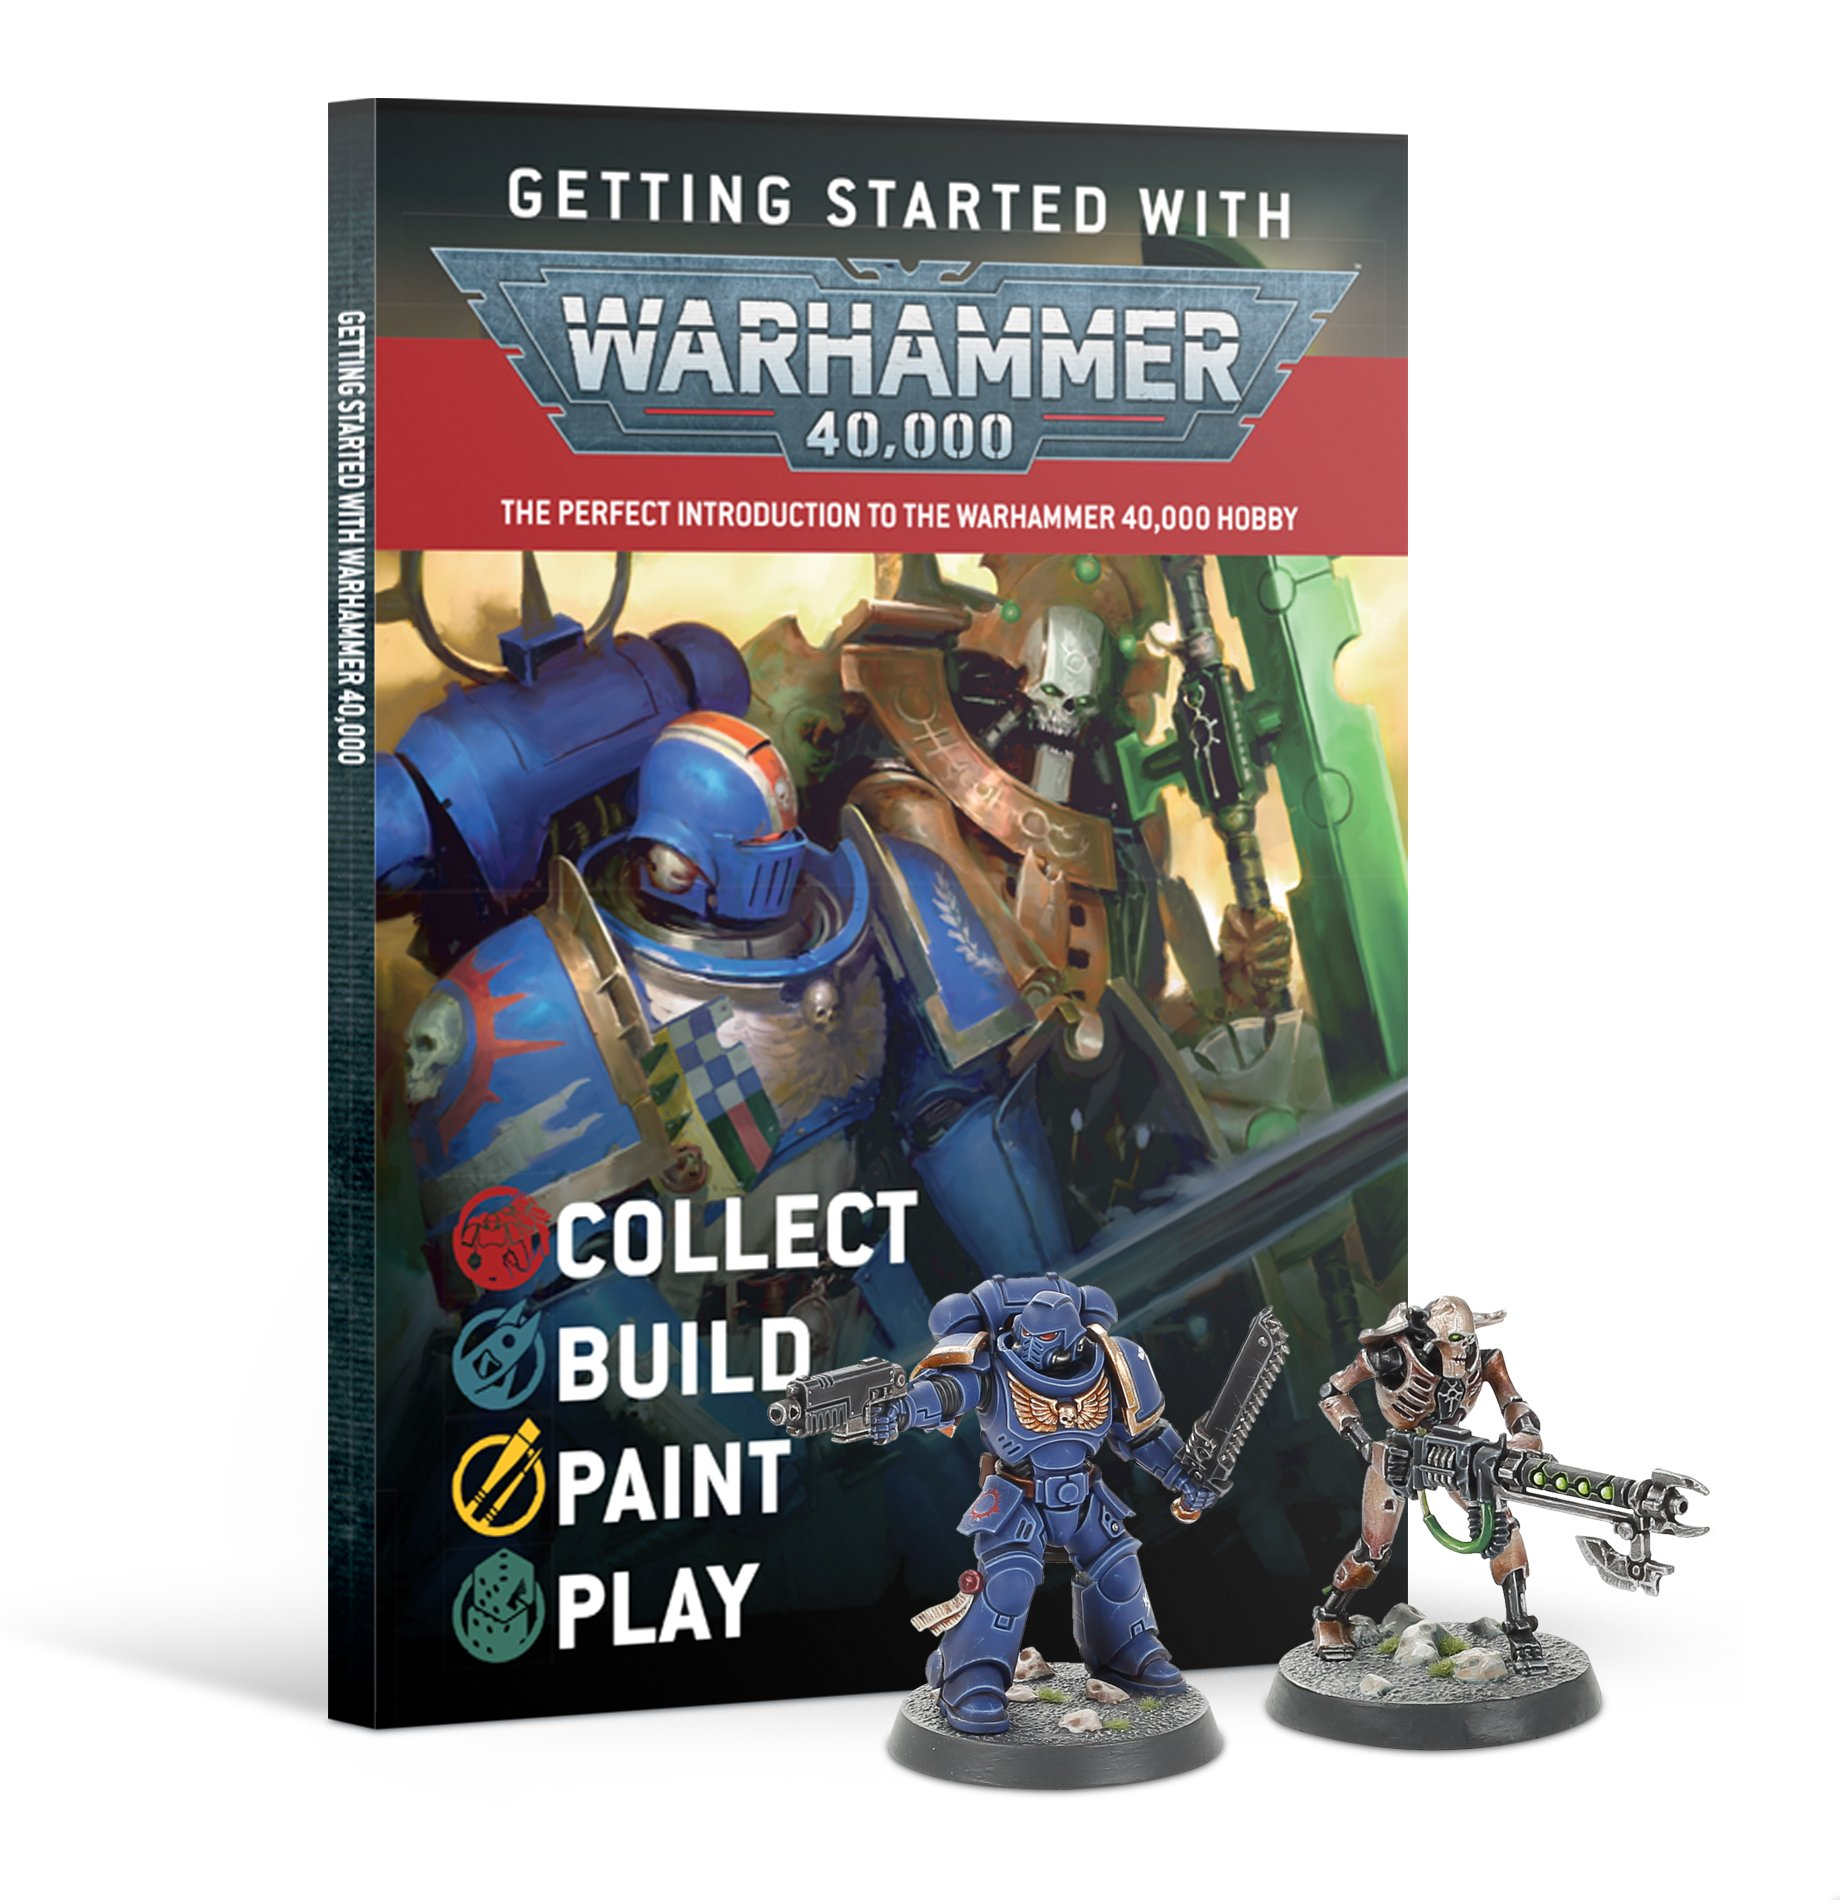 Getting Started With Warhammer 40,000 (2020)